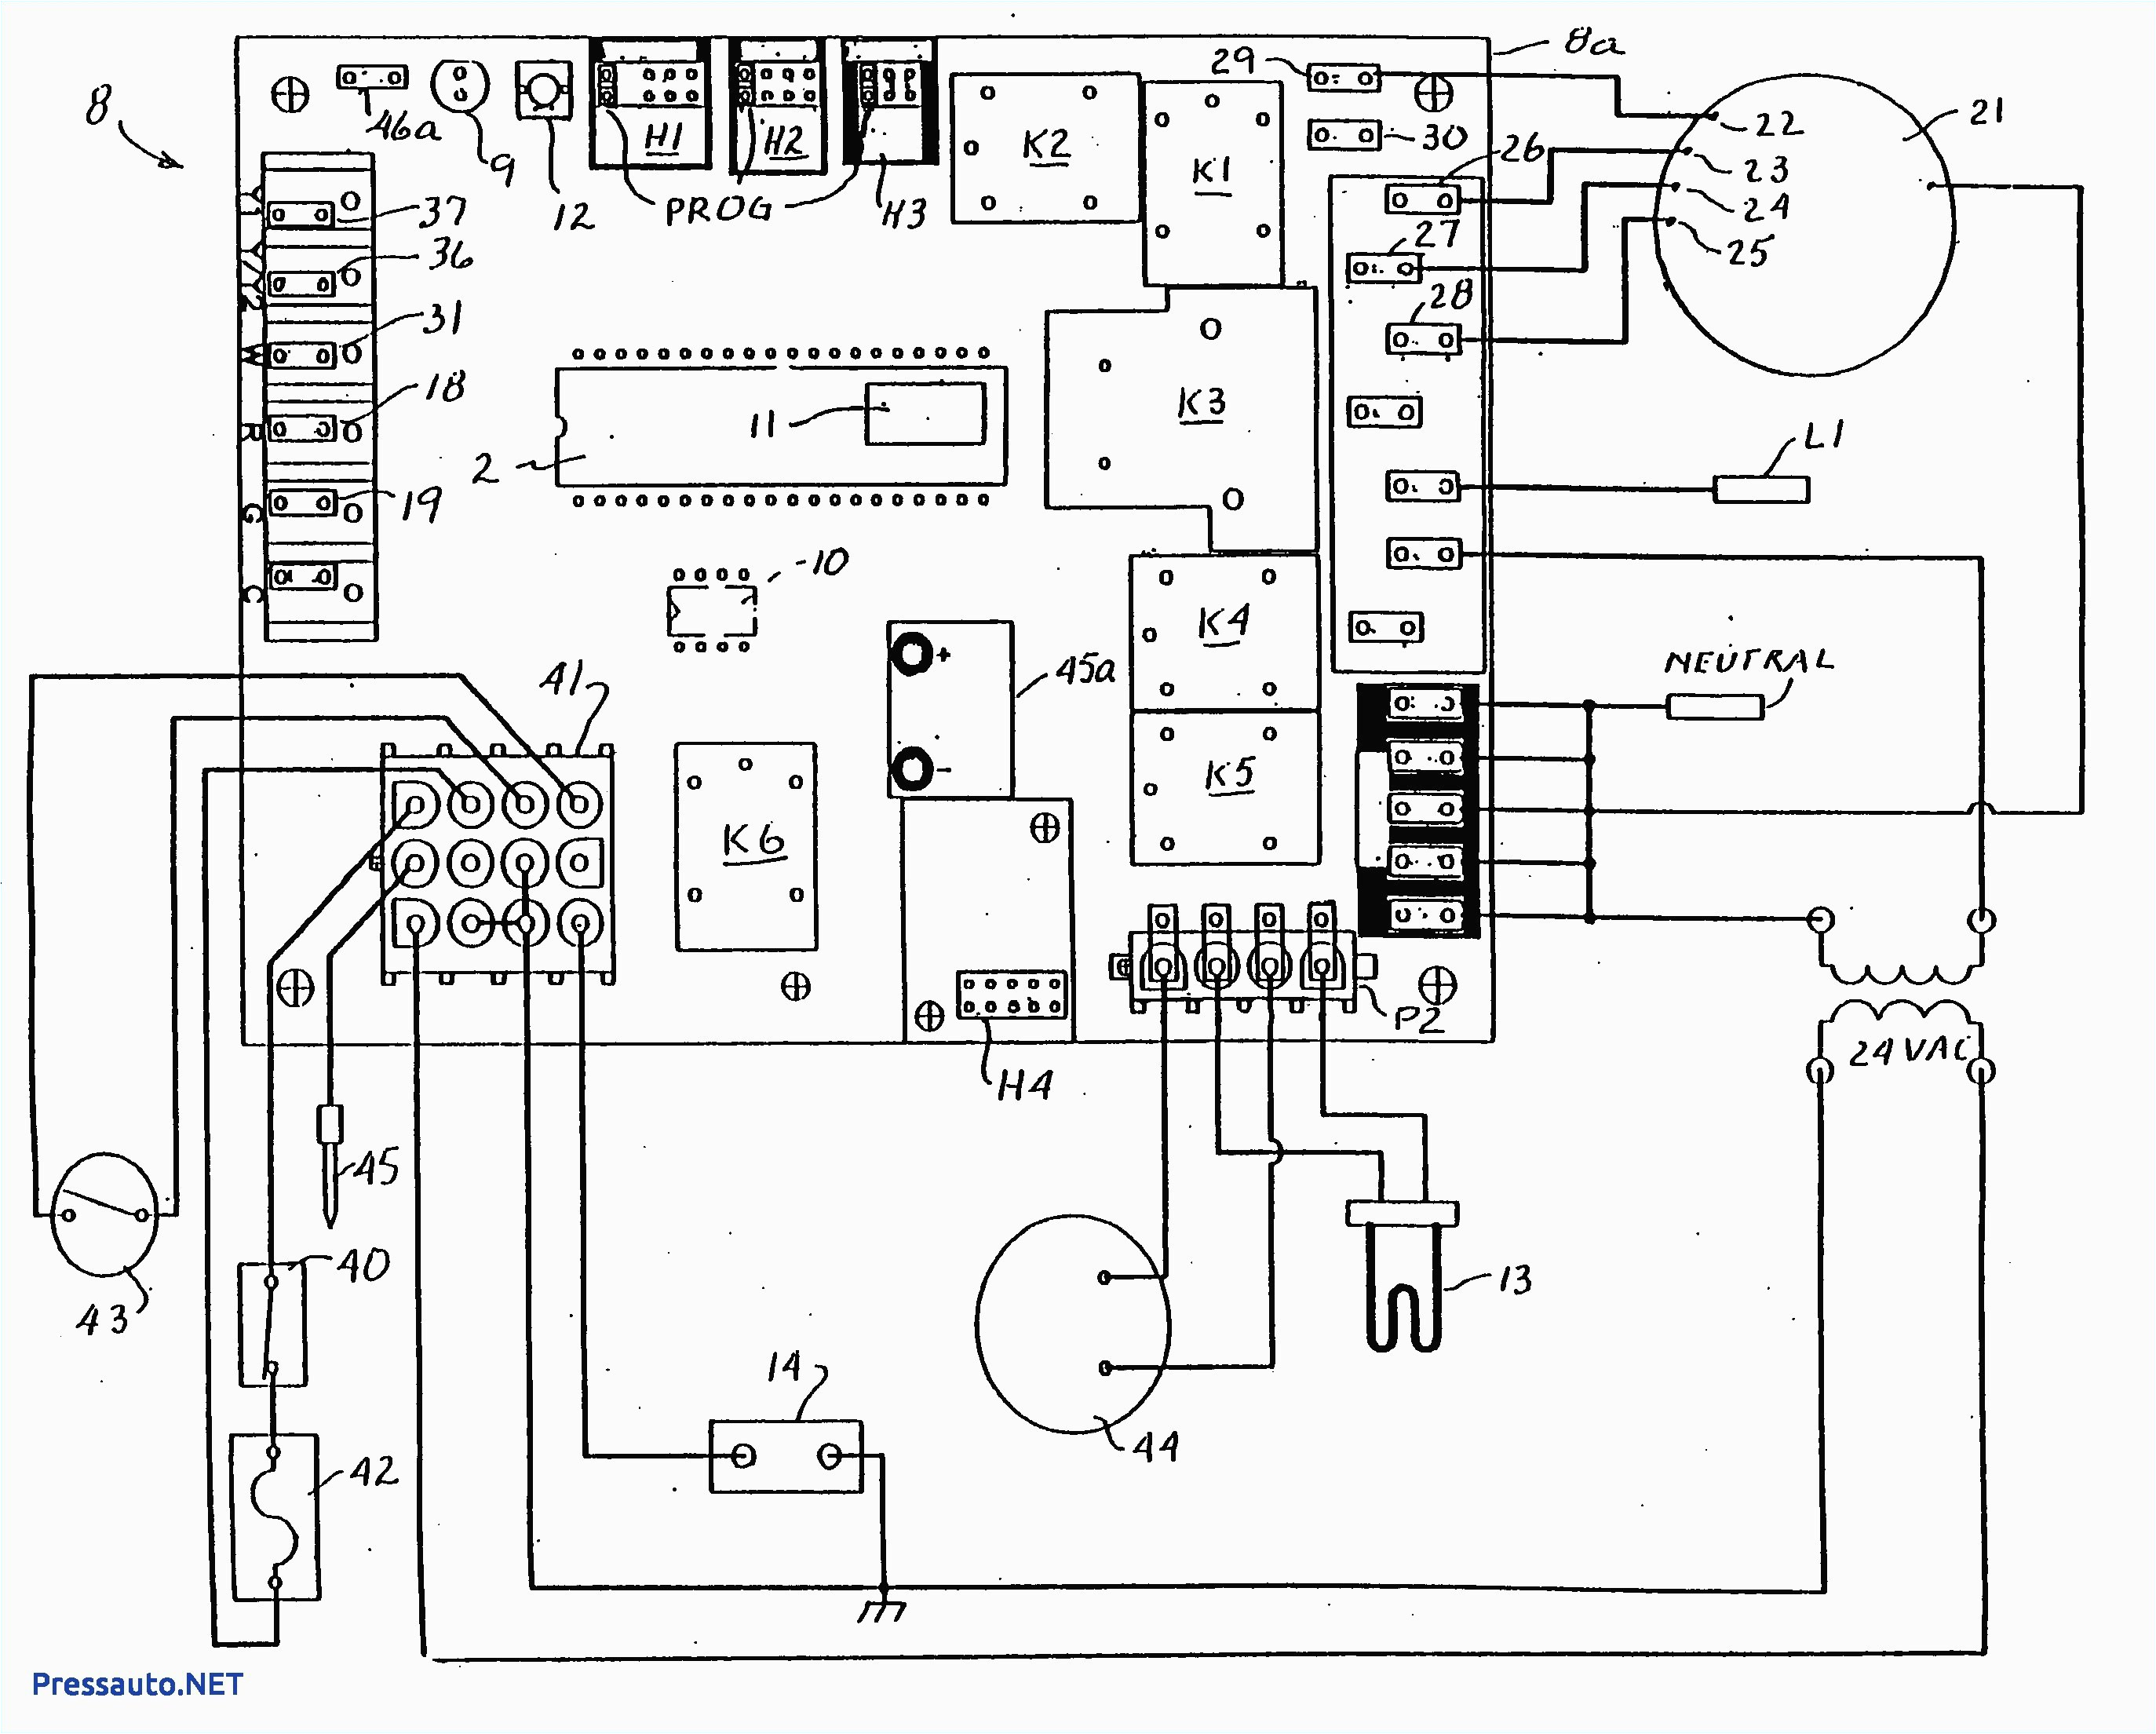 petra package unit wiring diagram inspirational ton package unit schematic free download wiring diagram schematic